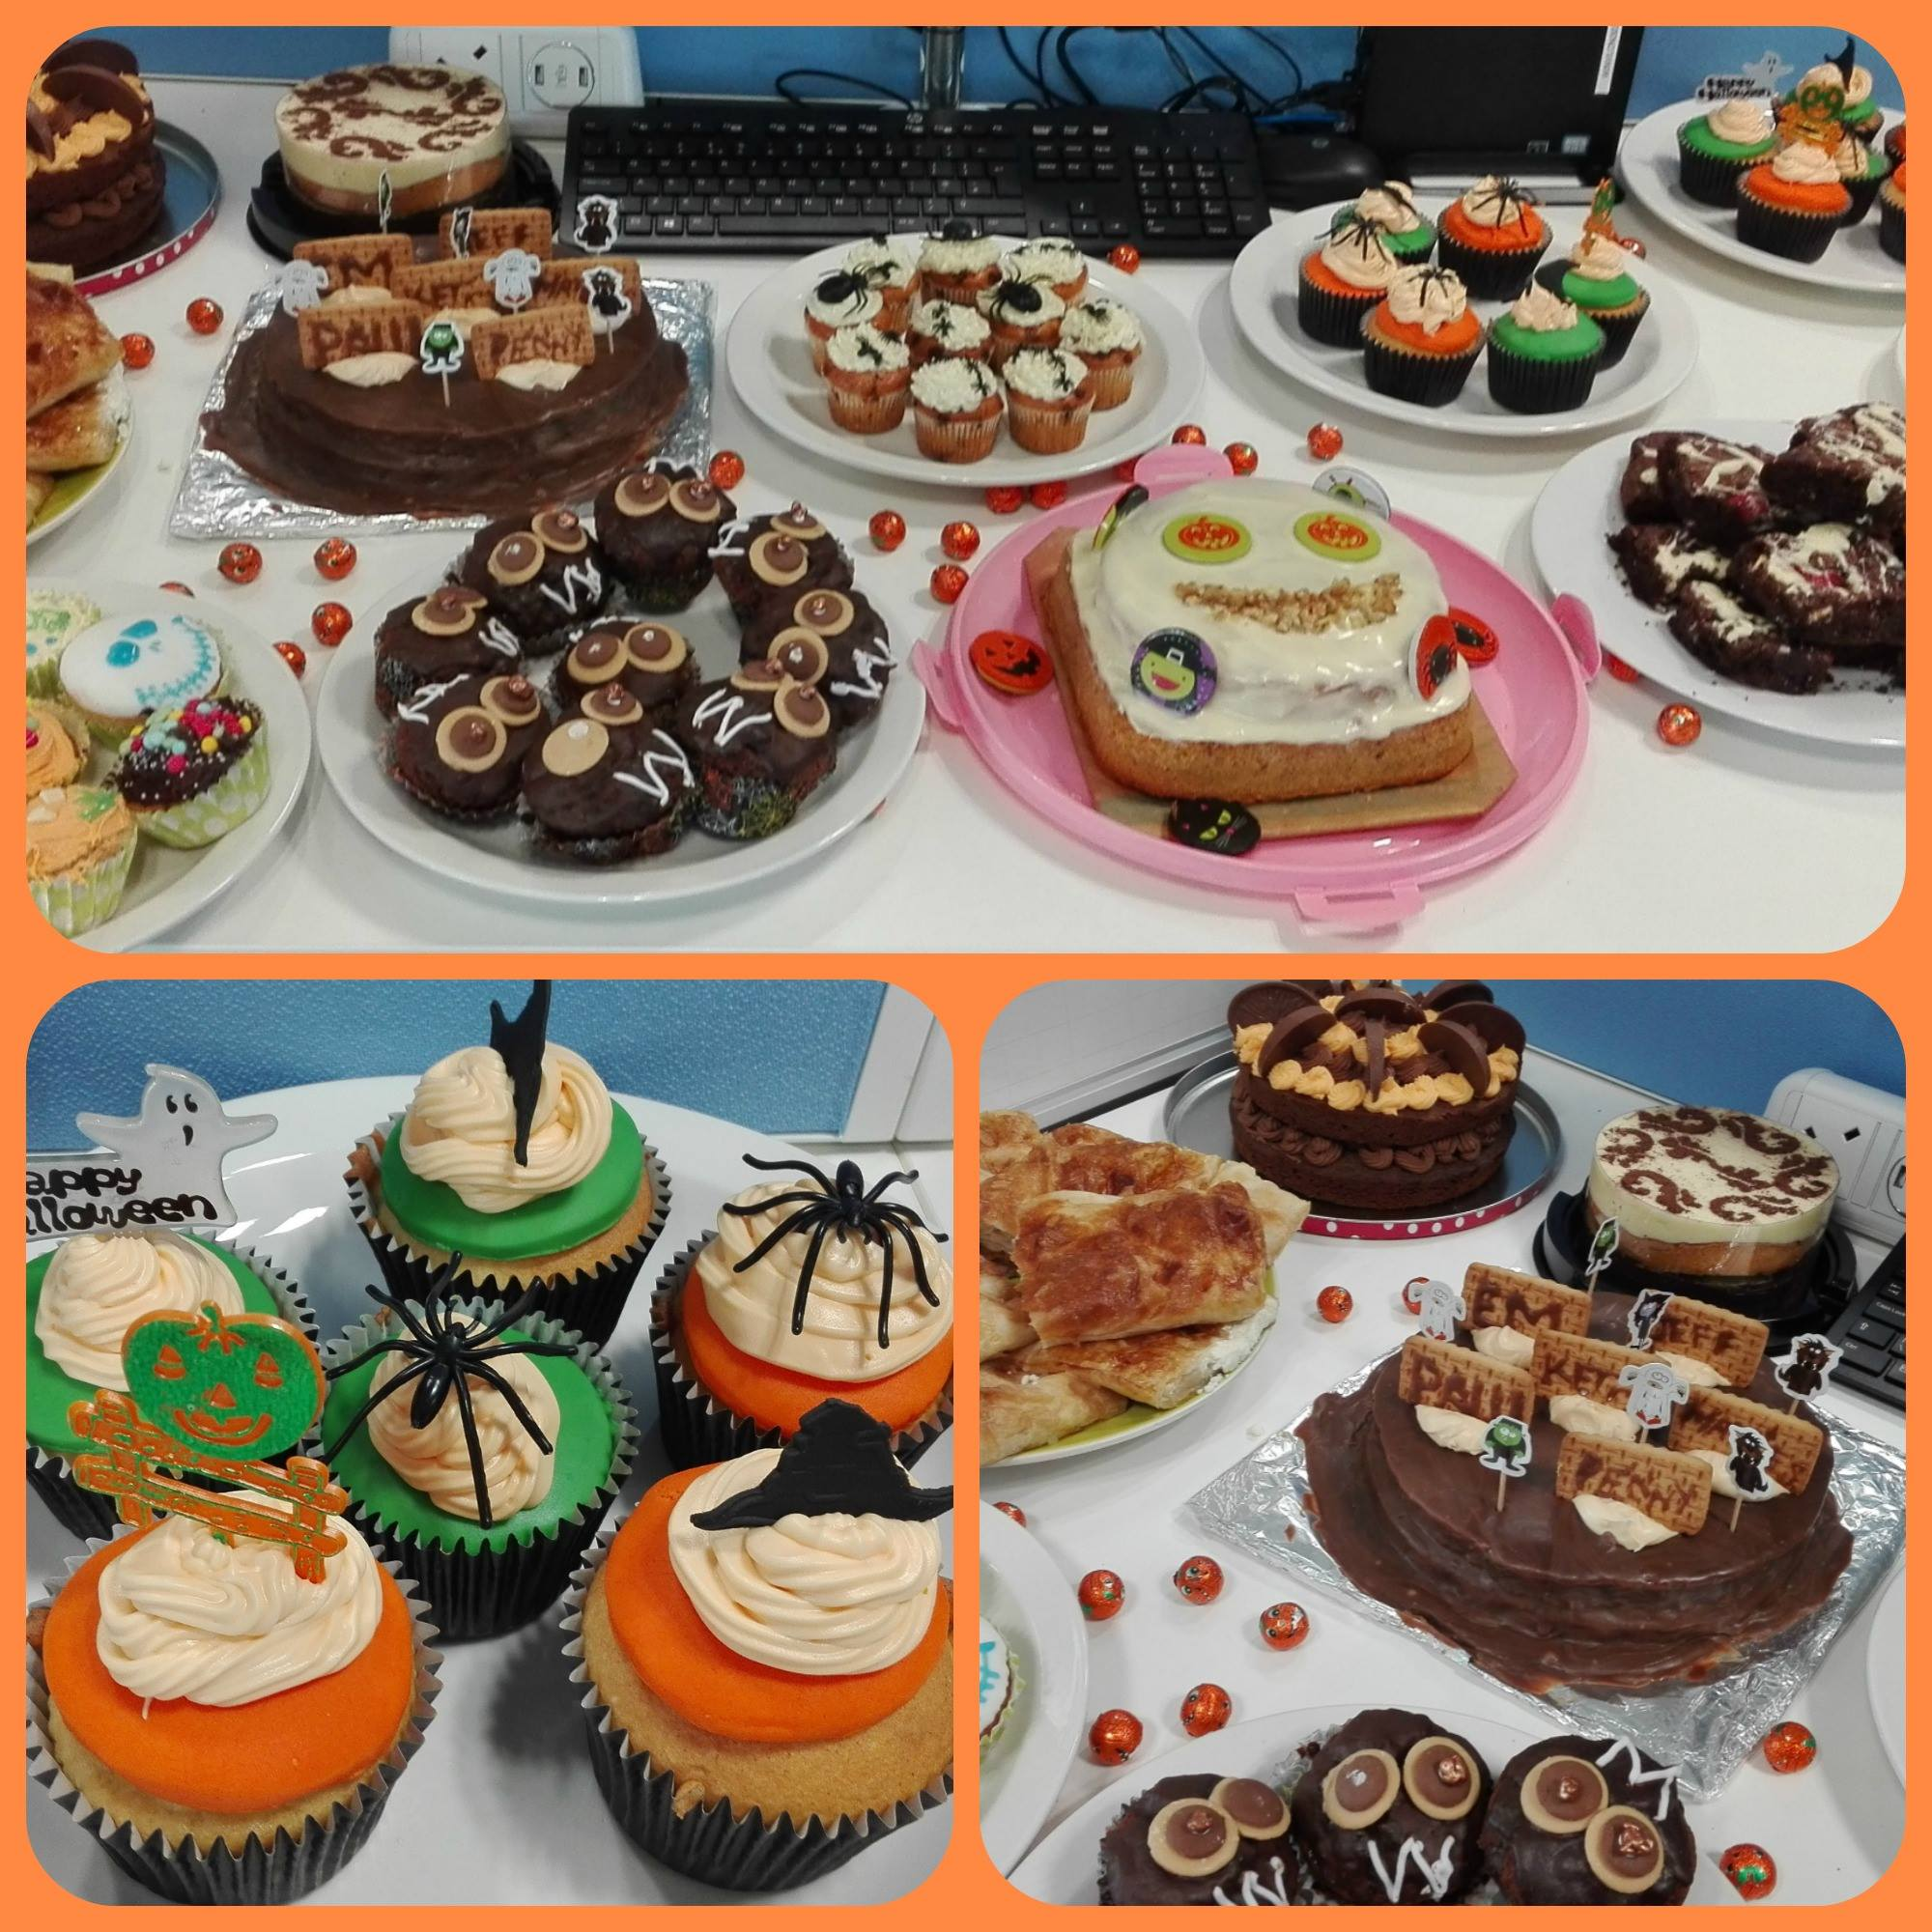 investigo's bake sale - Raised £200